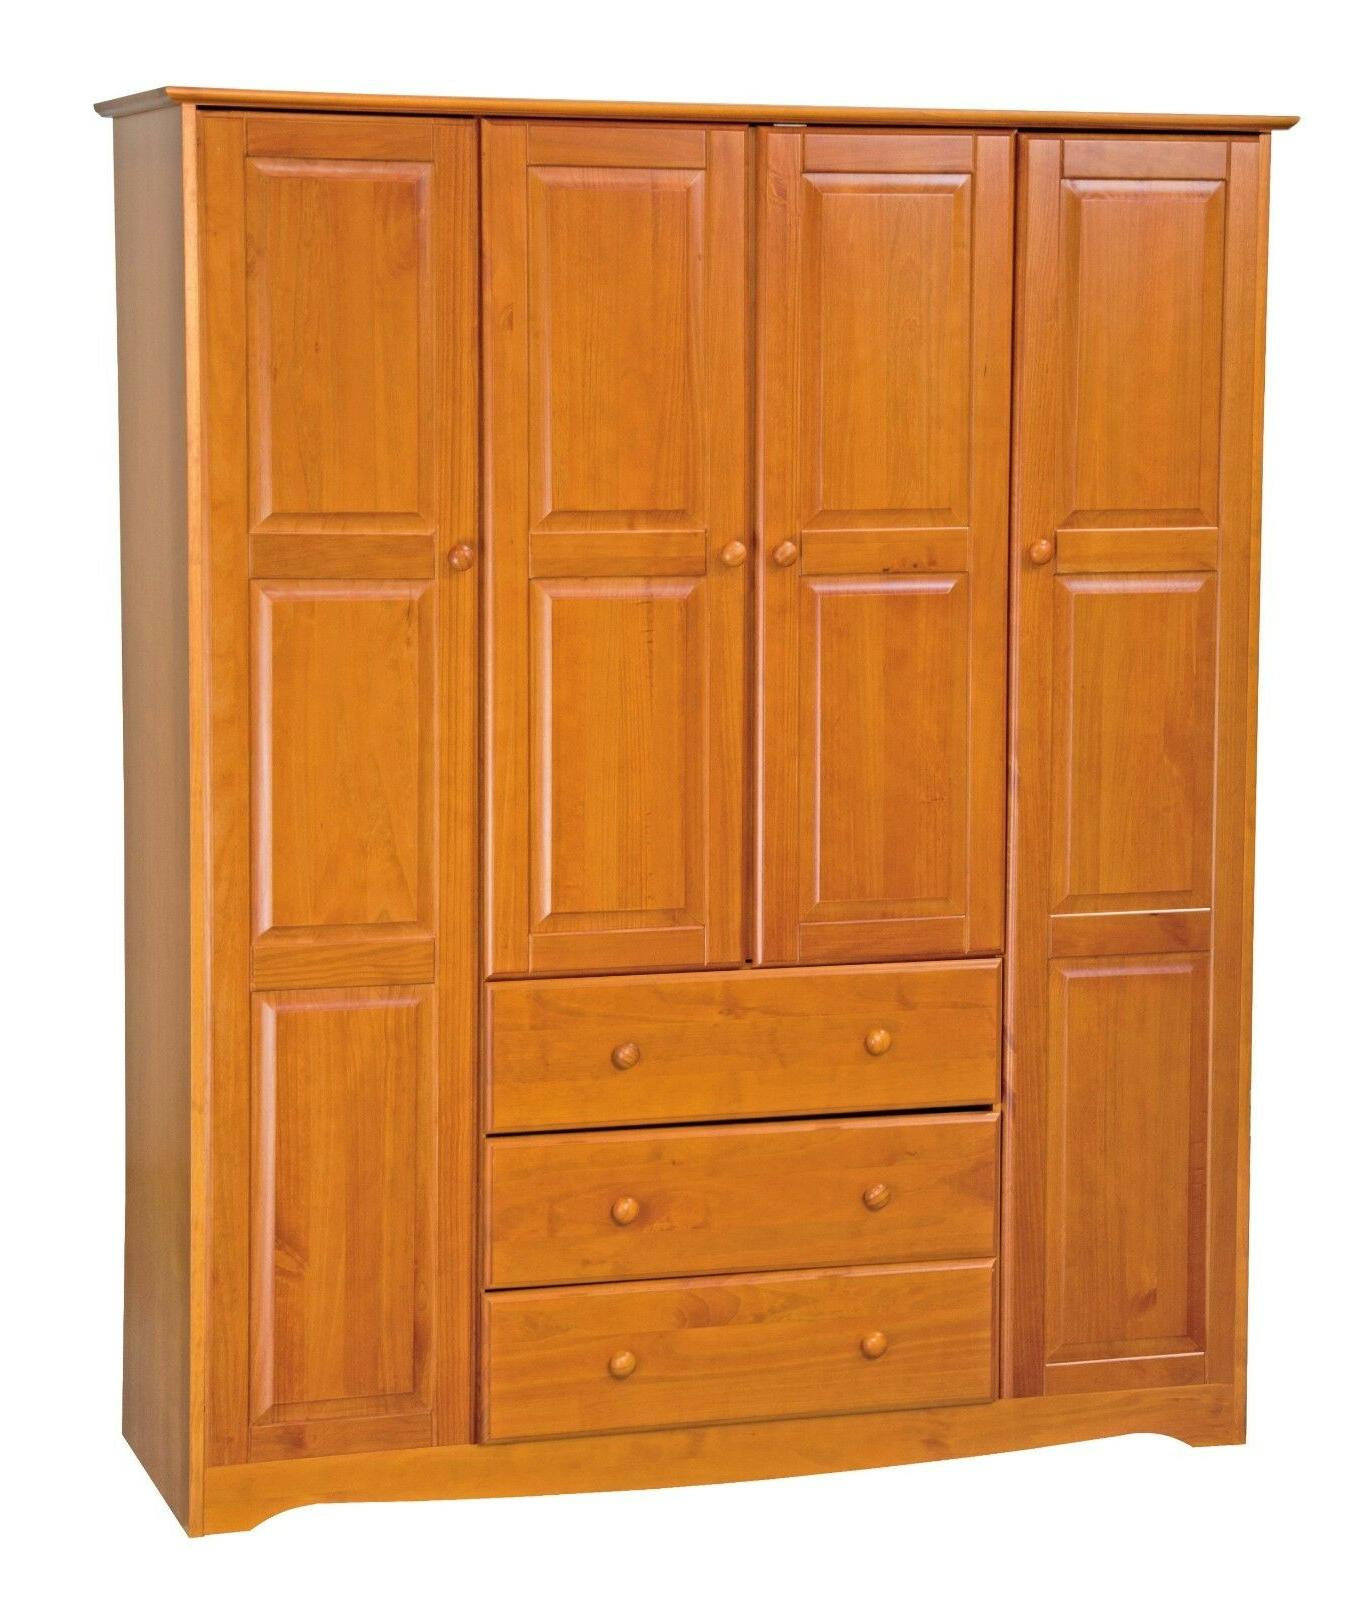 100% Wood Wardrobe/Armoire/Closet 5